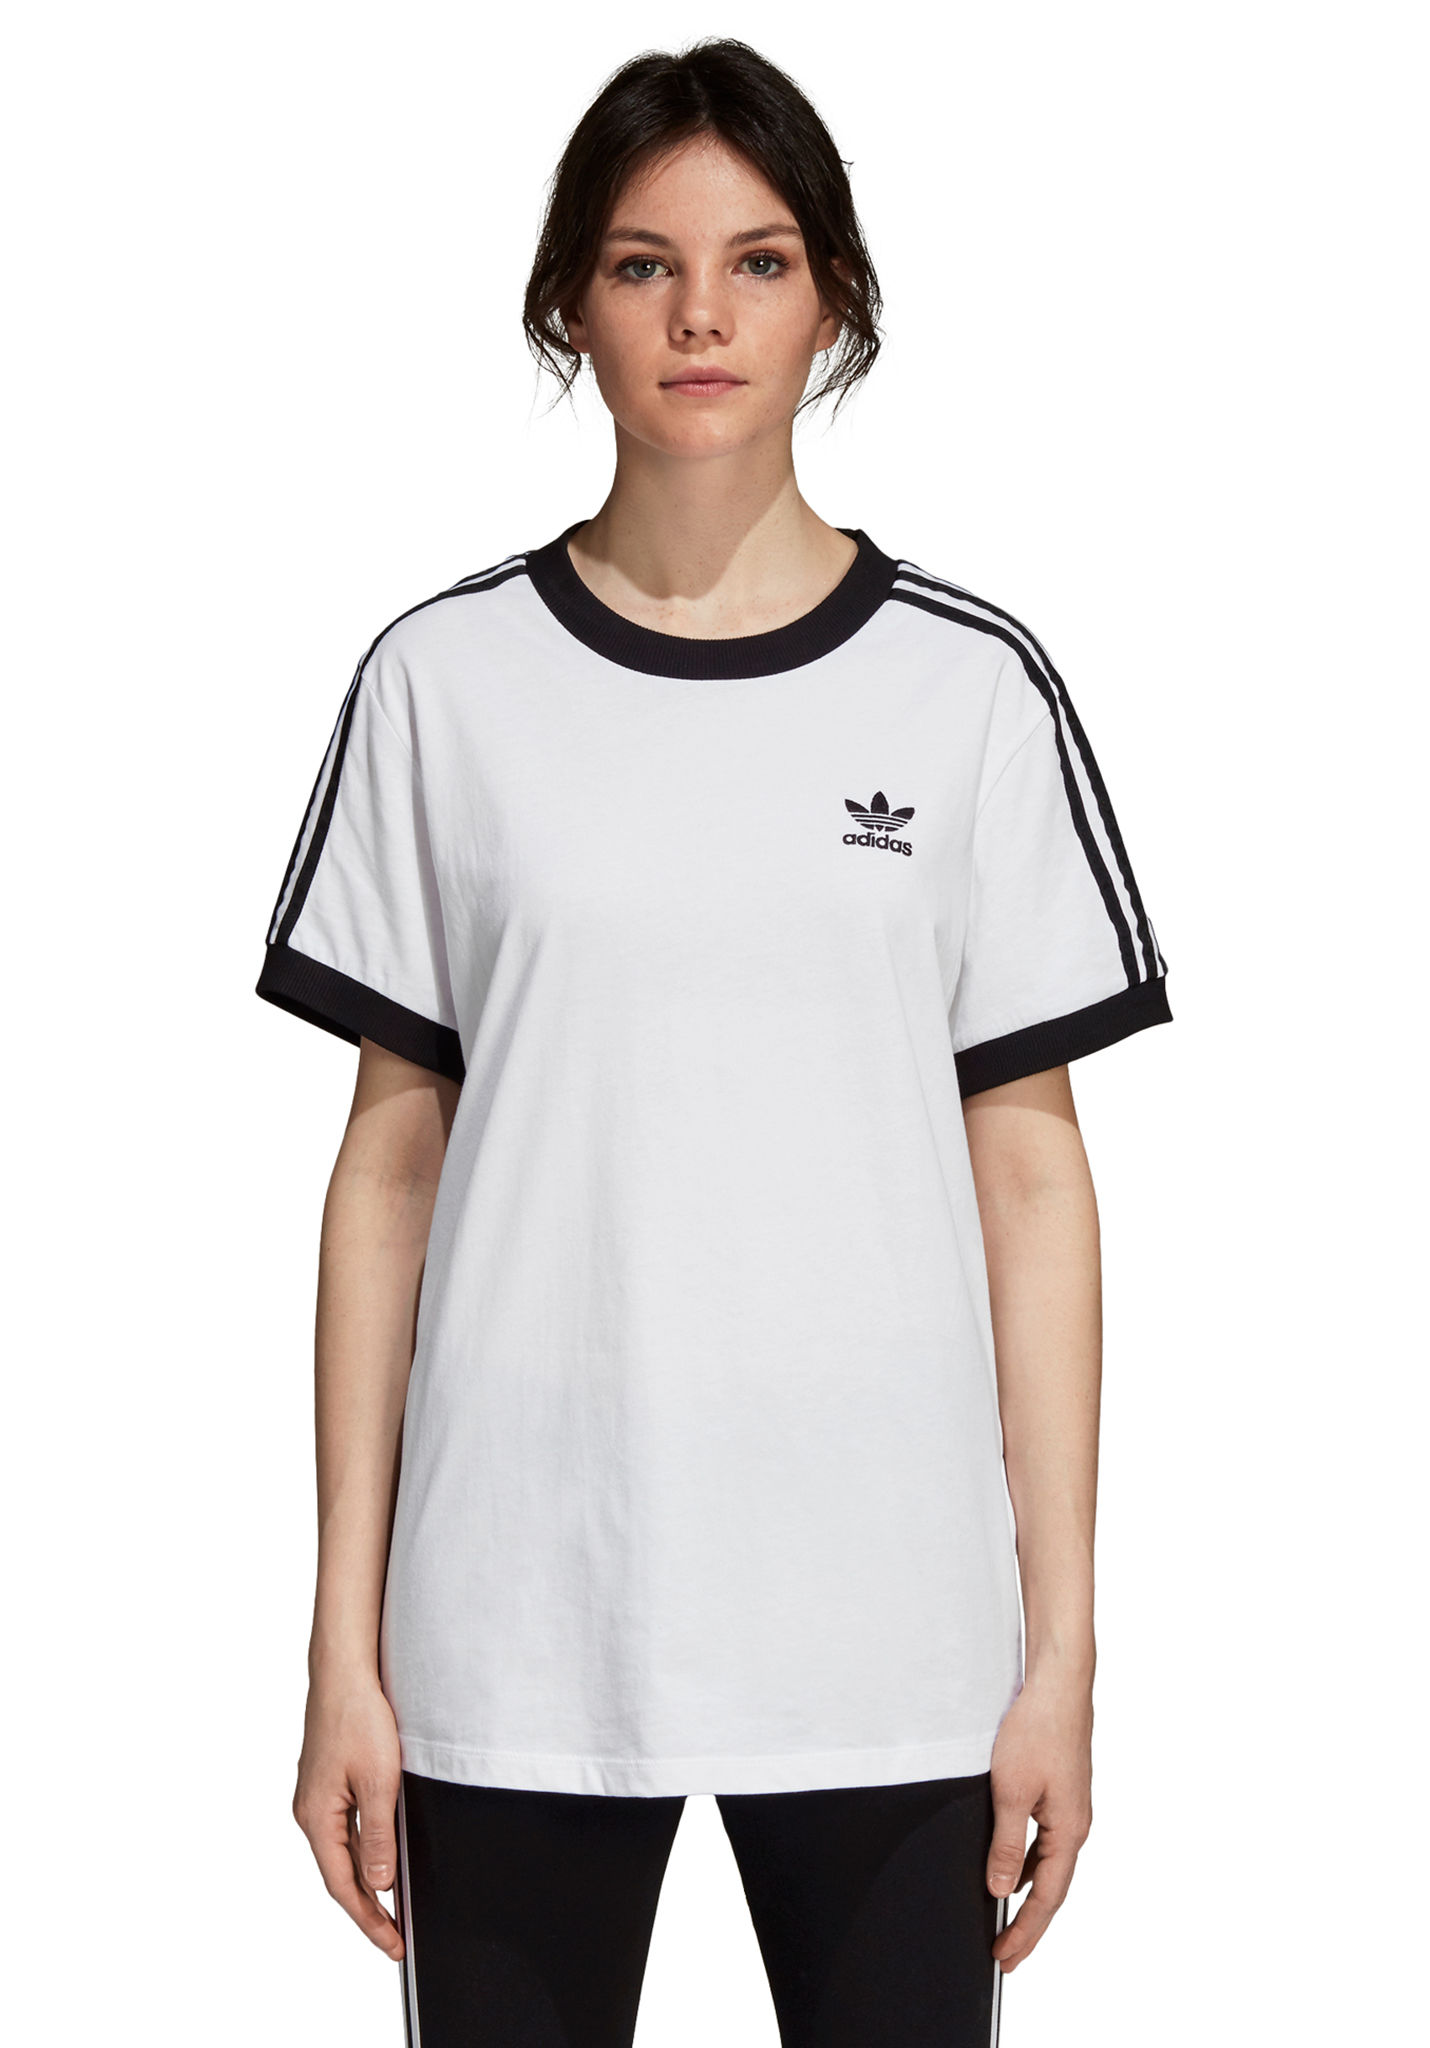 cfbab7192d8be5 ADIDAS ORIGINALS 3 Stripes - T-Shirt for Women - White - Planet Sports